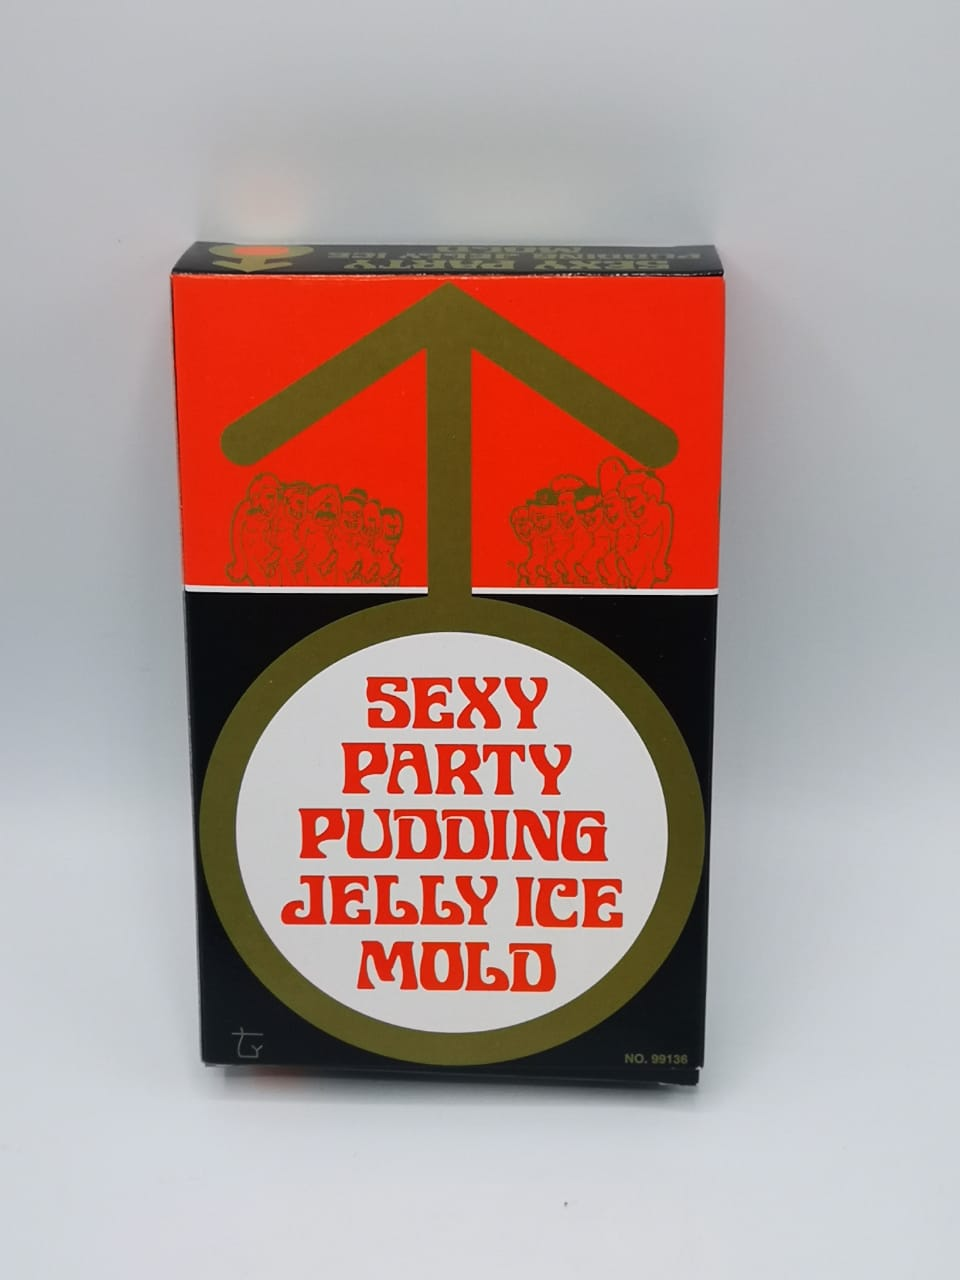 Mold for jelly or ice